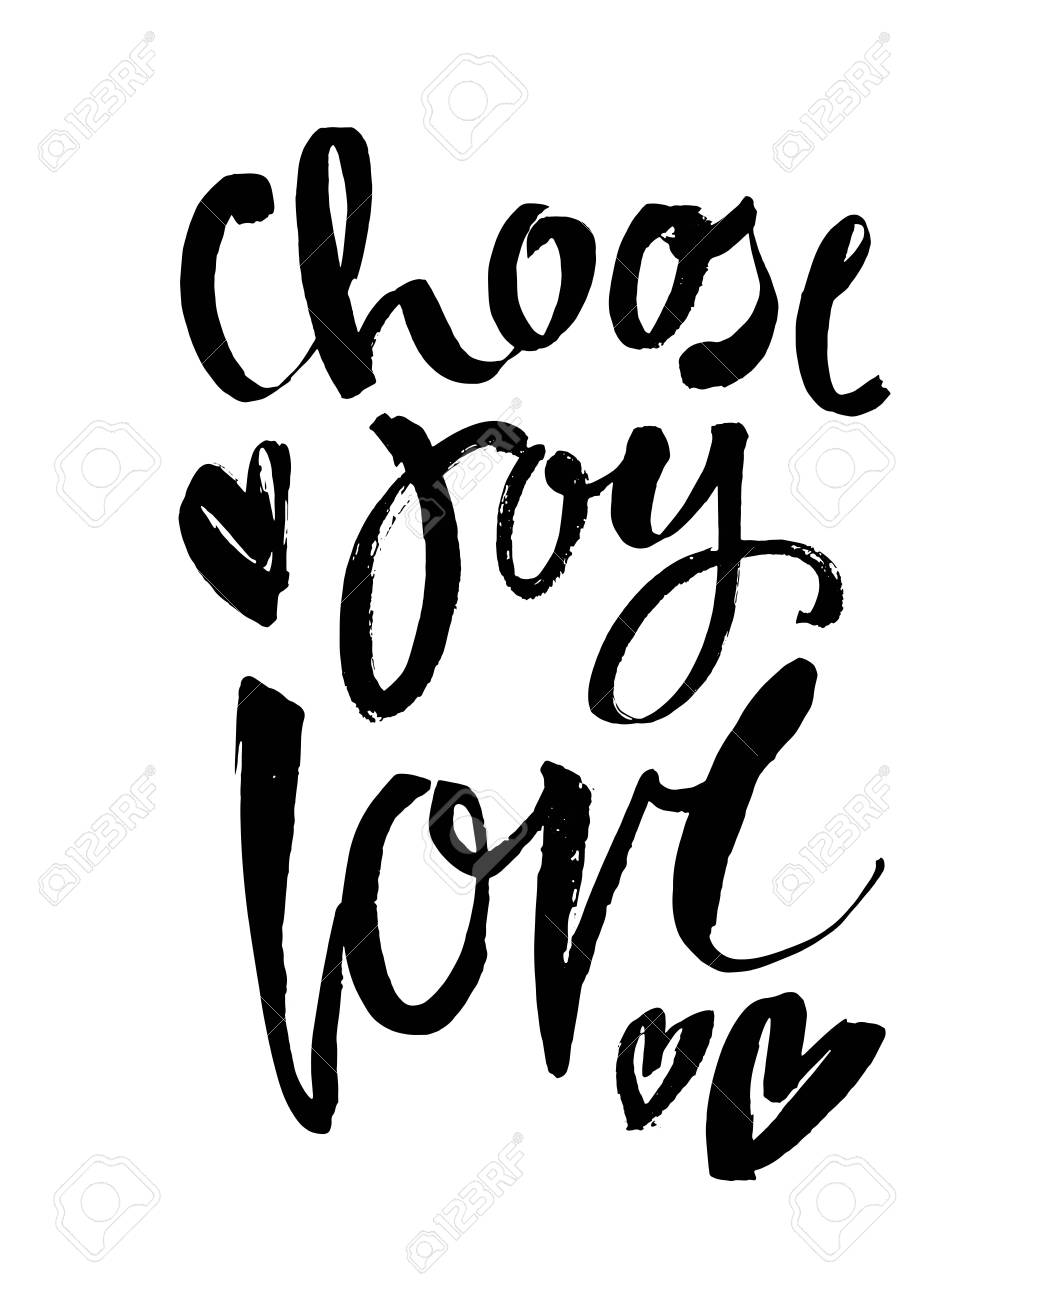 choose joy hand brush lettering inscription positive quote, motivational and inspirational poster, modern ink calligraphy vector illustration - 126977010